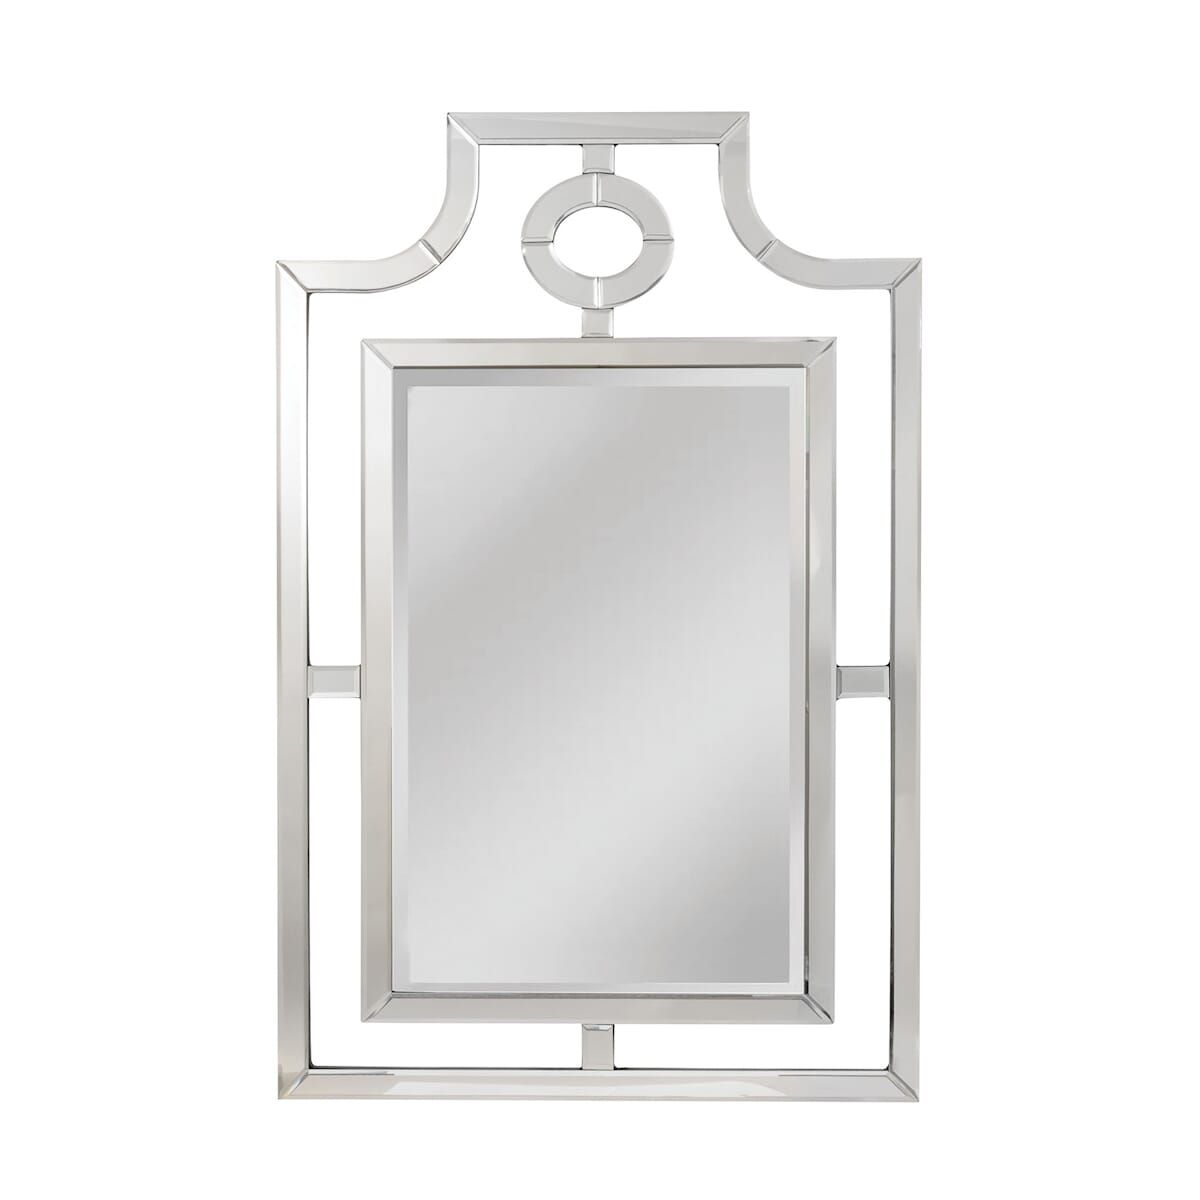 Elk Fusion Of Old World Design But Updated In Transitional Mirror In Clear In 2020 Transitional Mirrors Mirror Mirrors Wayfair